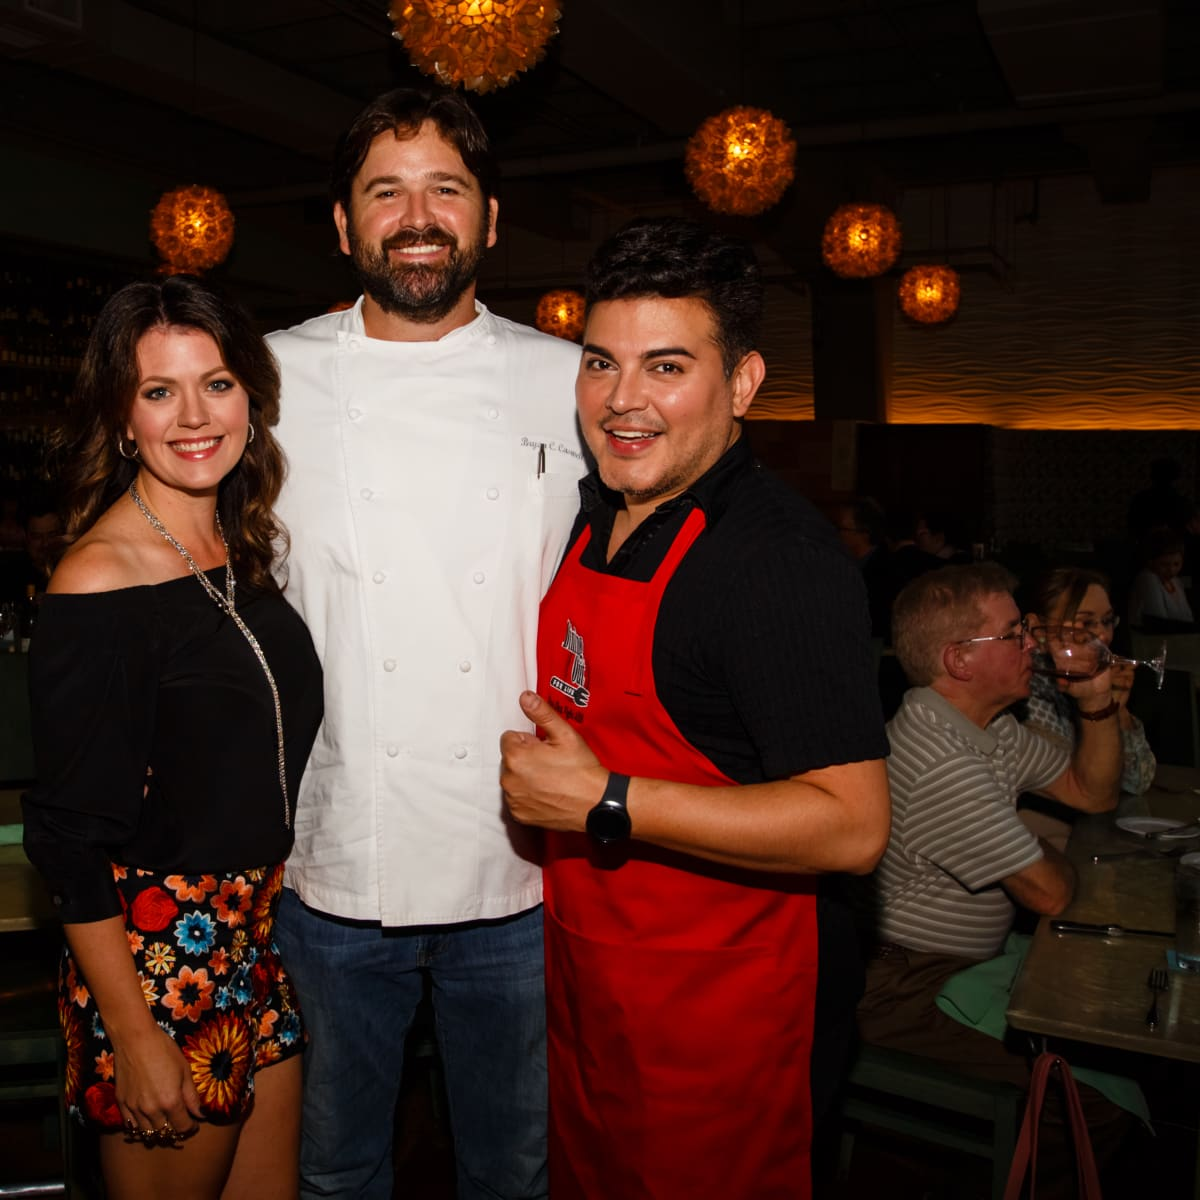 Dine Out for Life 4/16 Reef, Jennifer Caswell, Bryan Caswell, Edward Sanchez